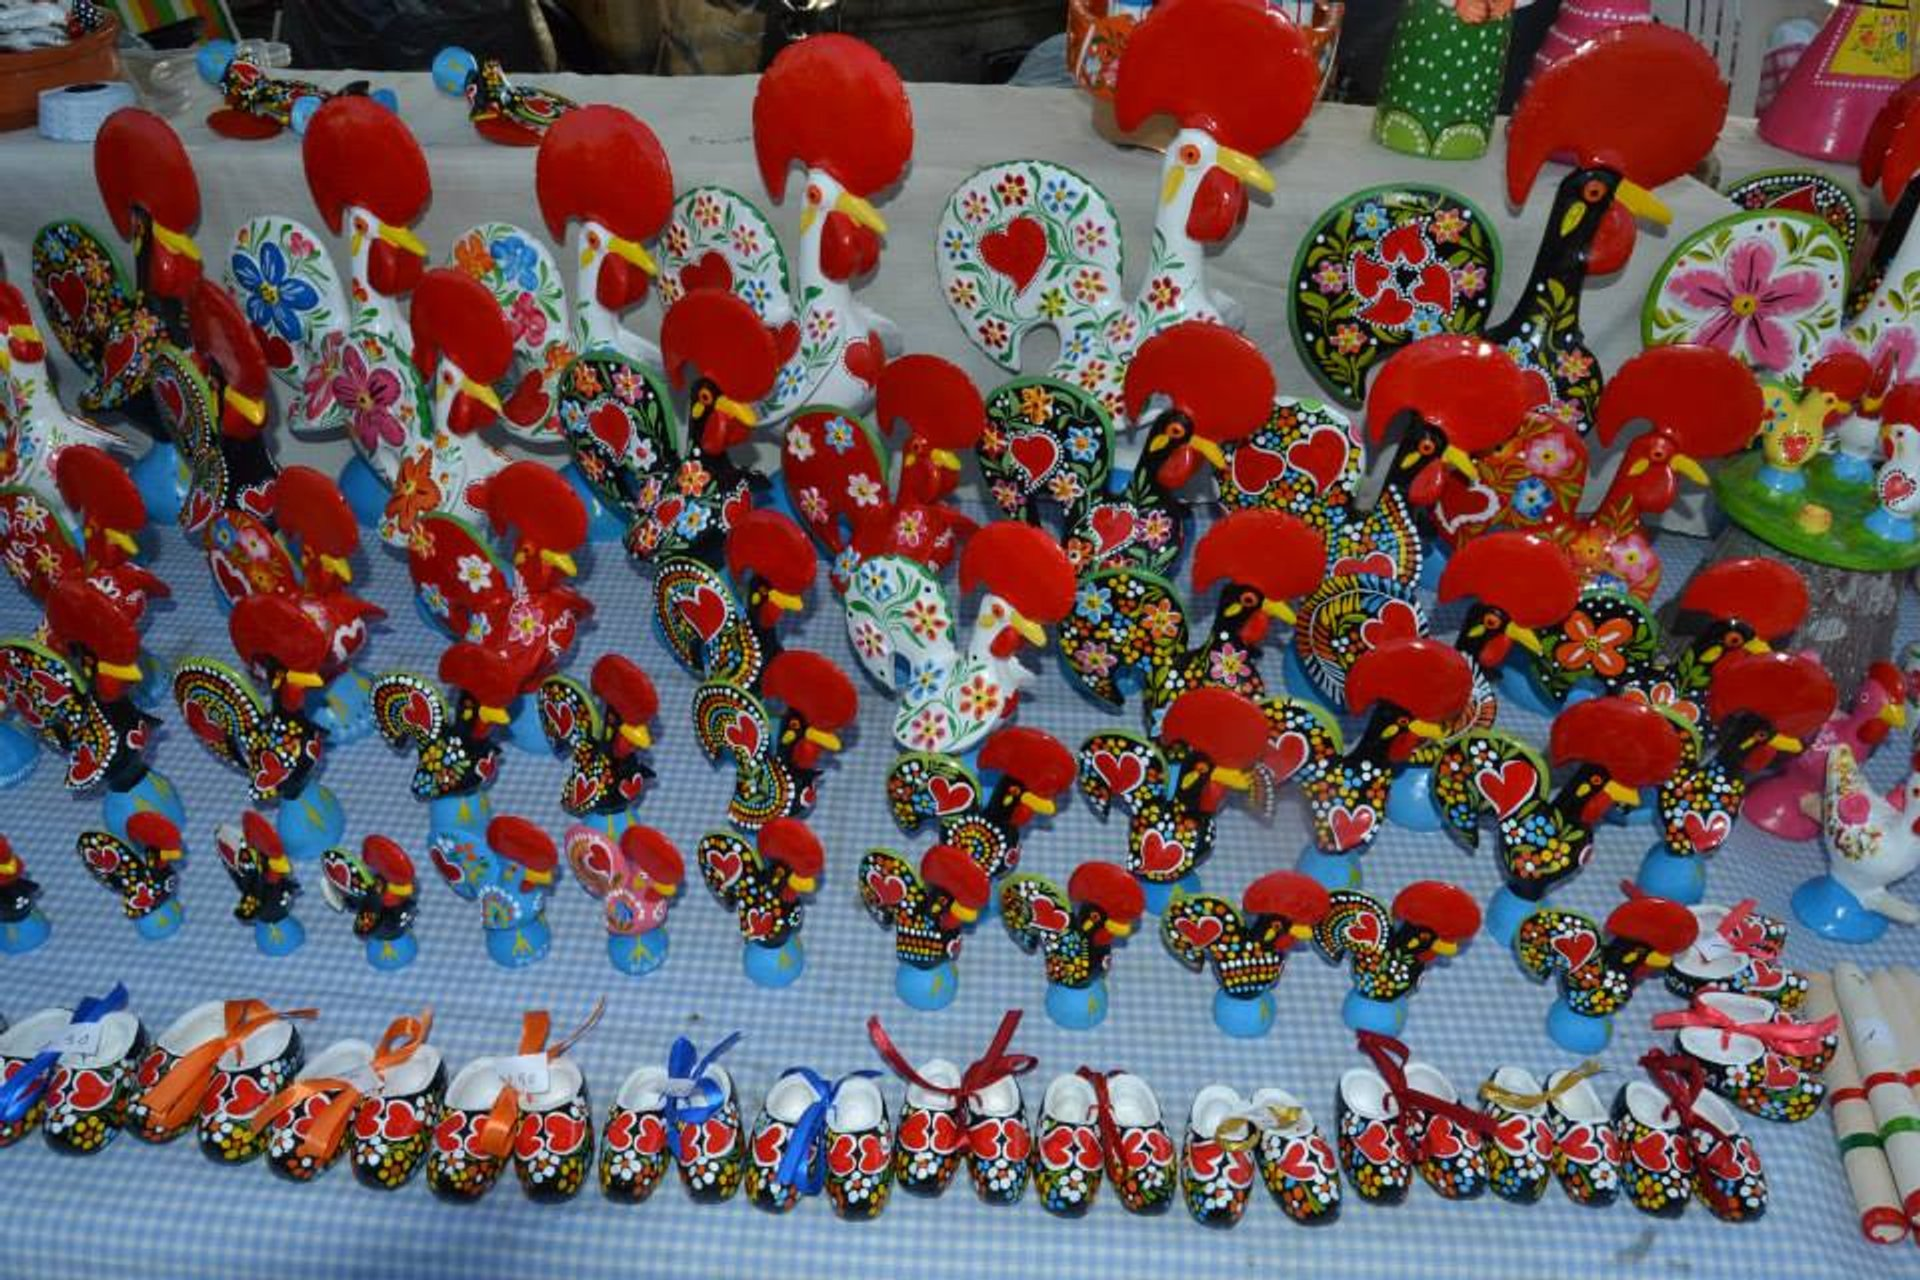 Feira de Barcelos in Portugal 2020 - Best Time